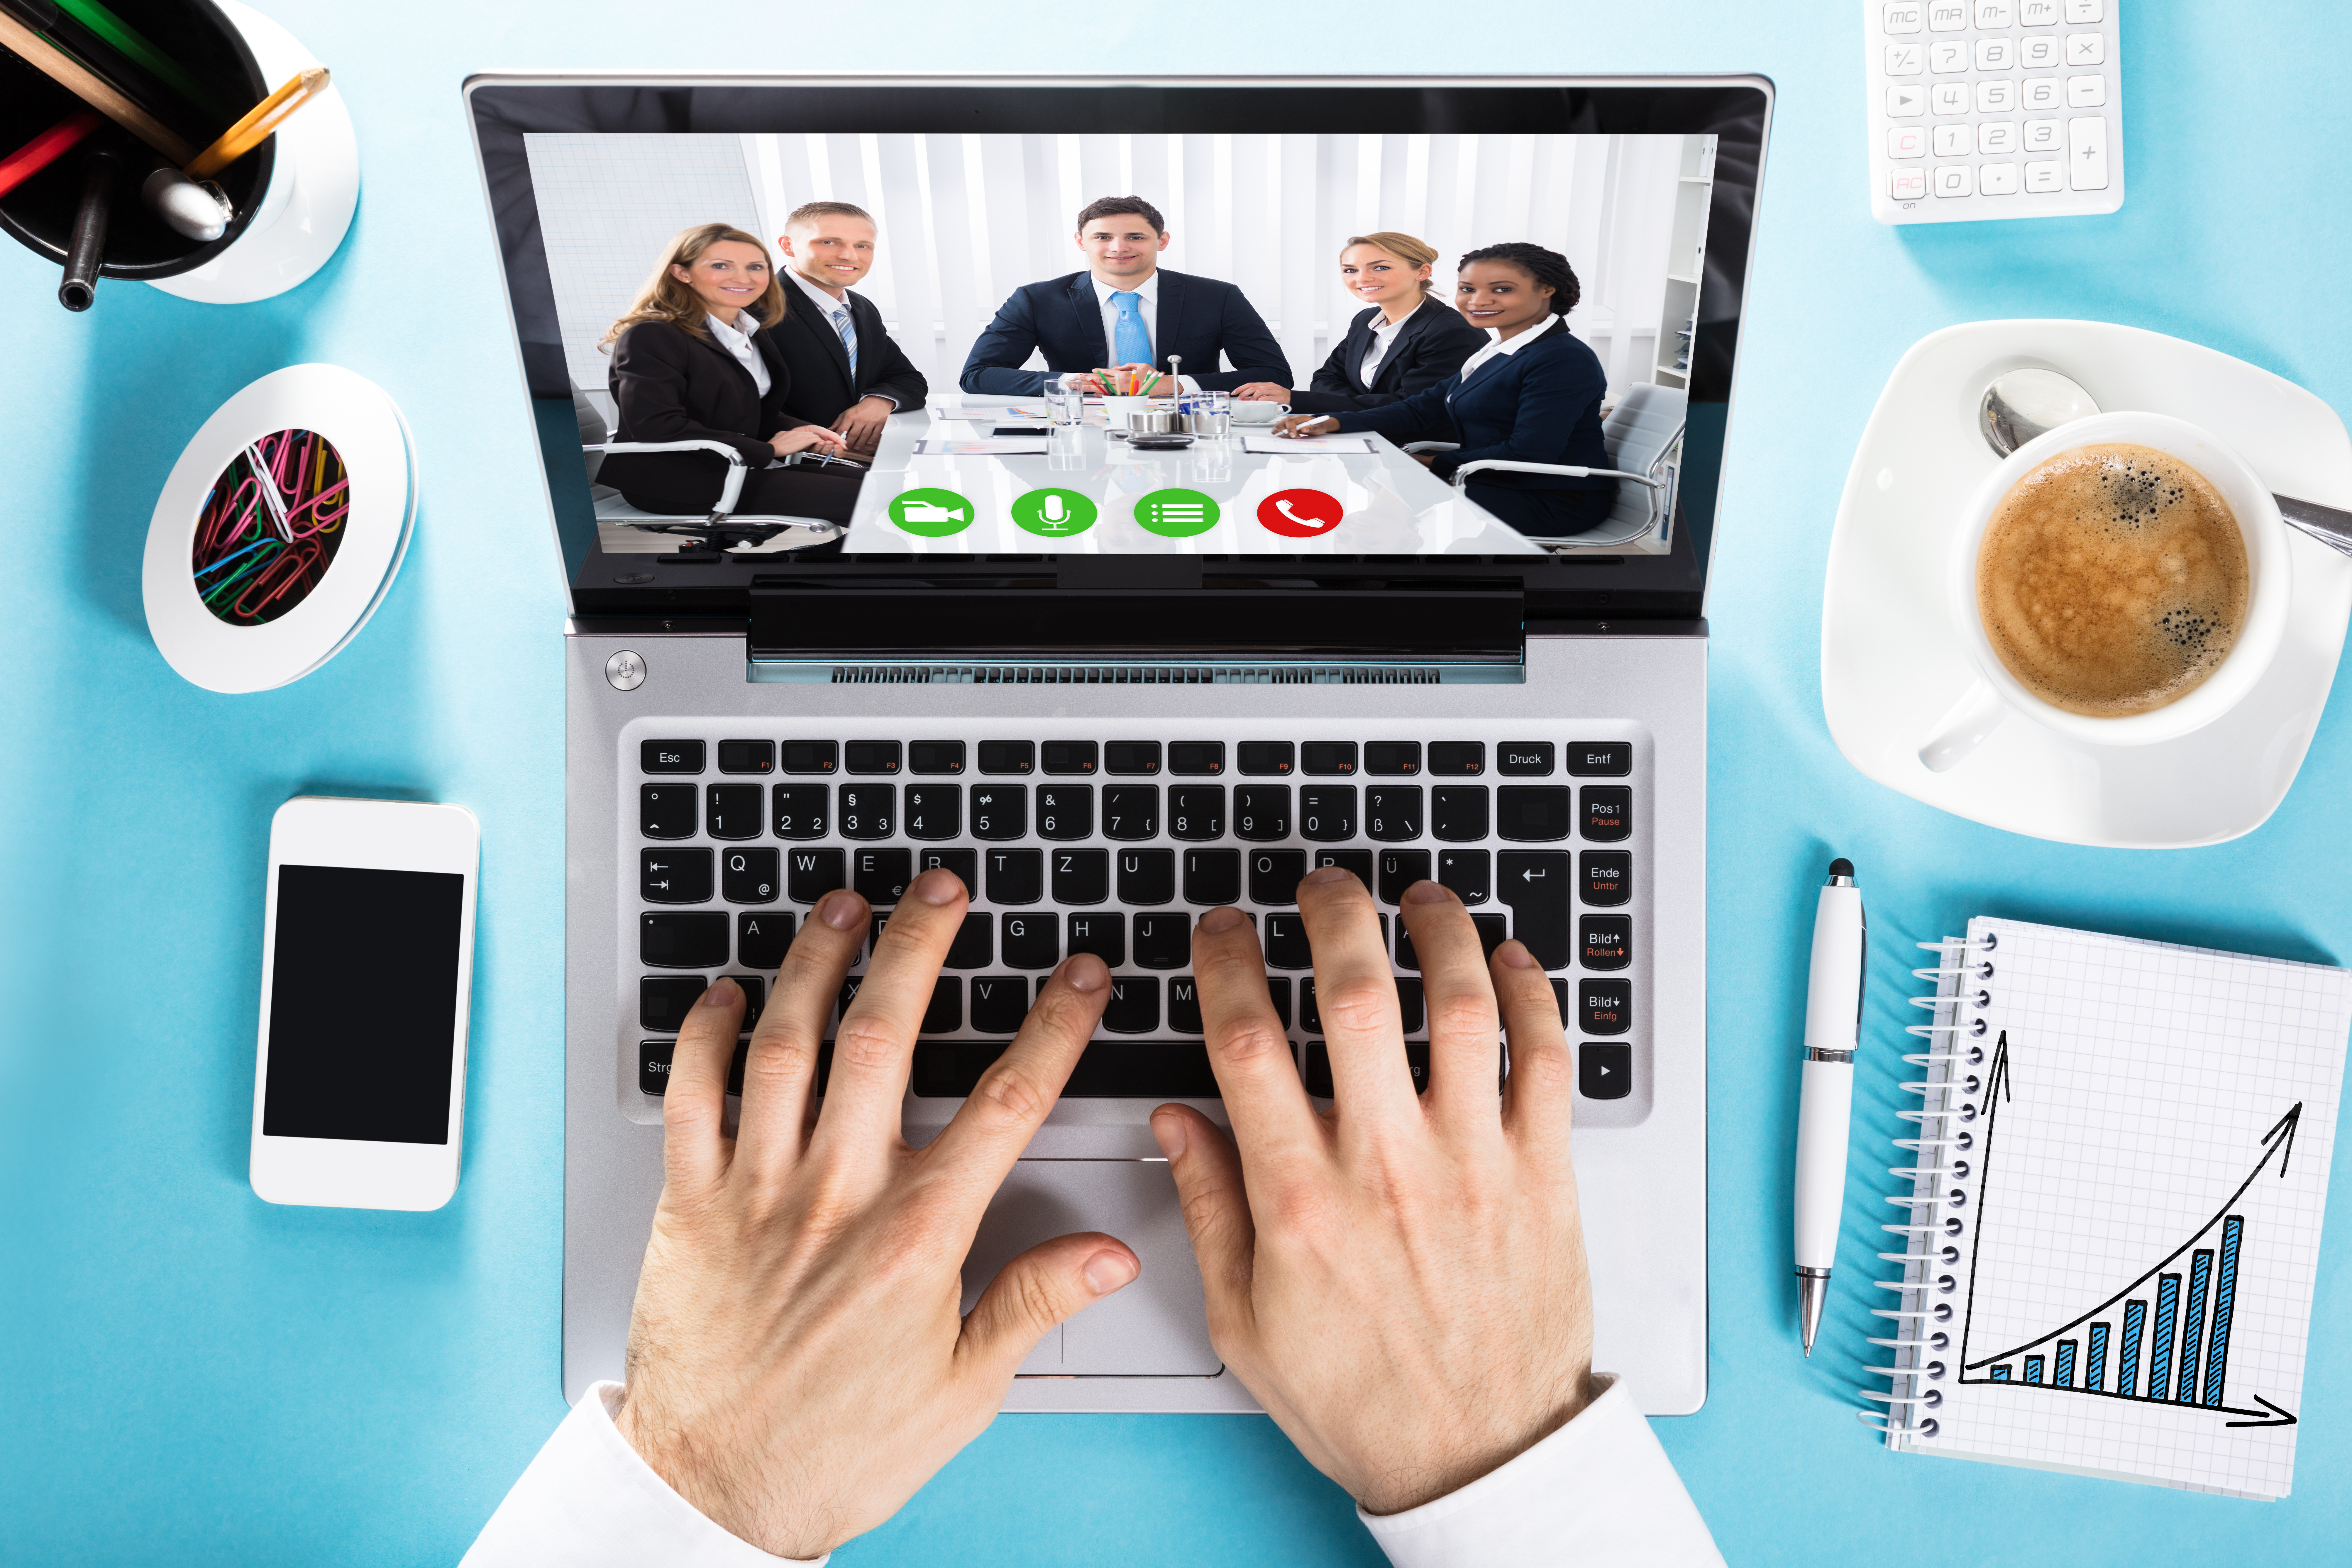 Video Interviews: Law Firms Press On With Hiring